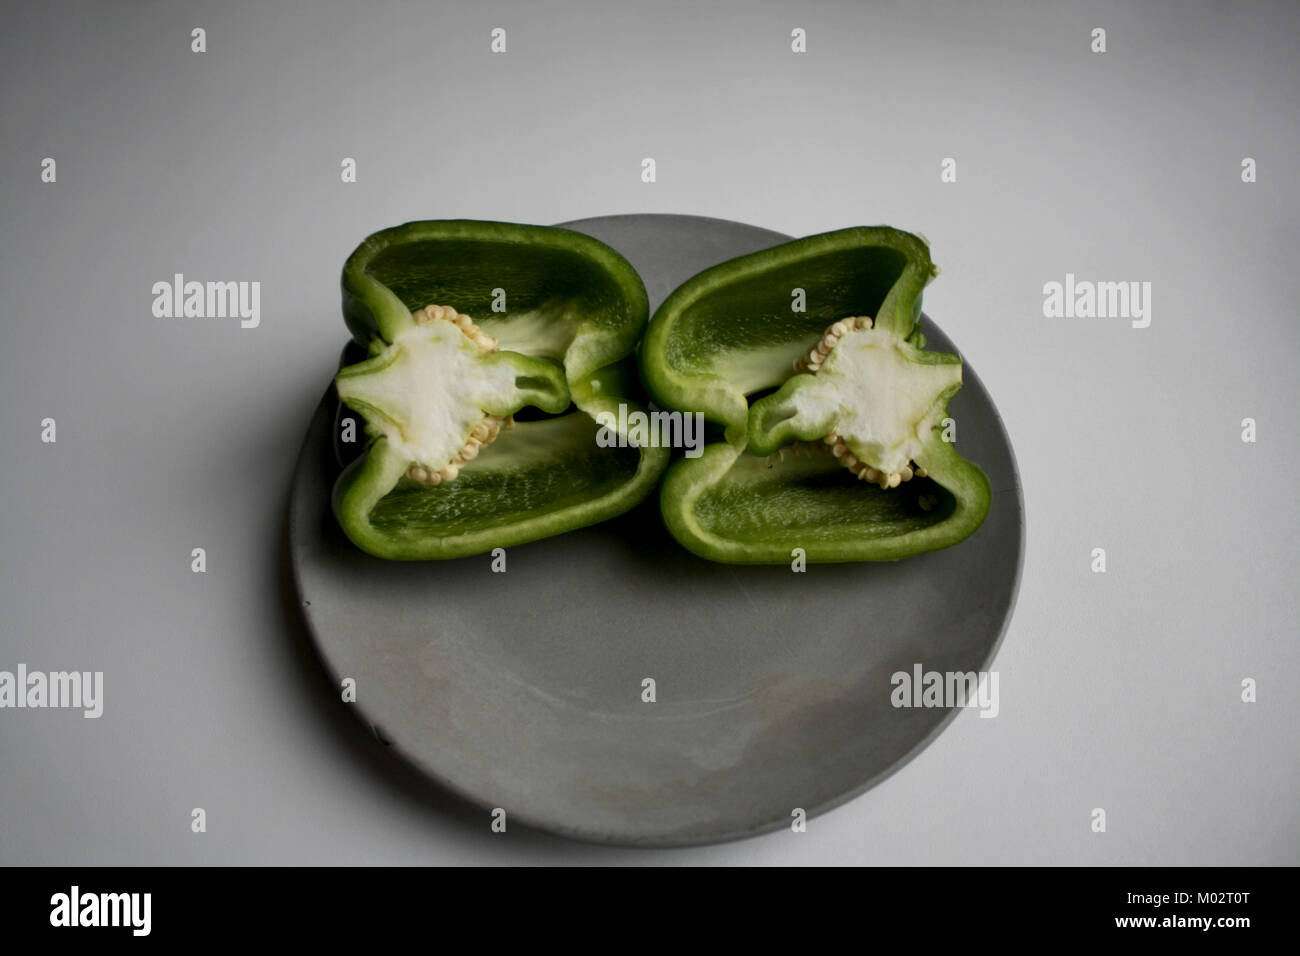 Green poblano pepper halves isolated on grey concrete plate Stock Photo